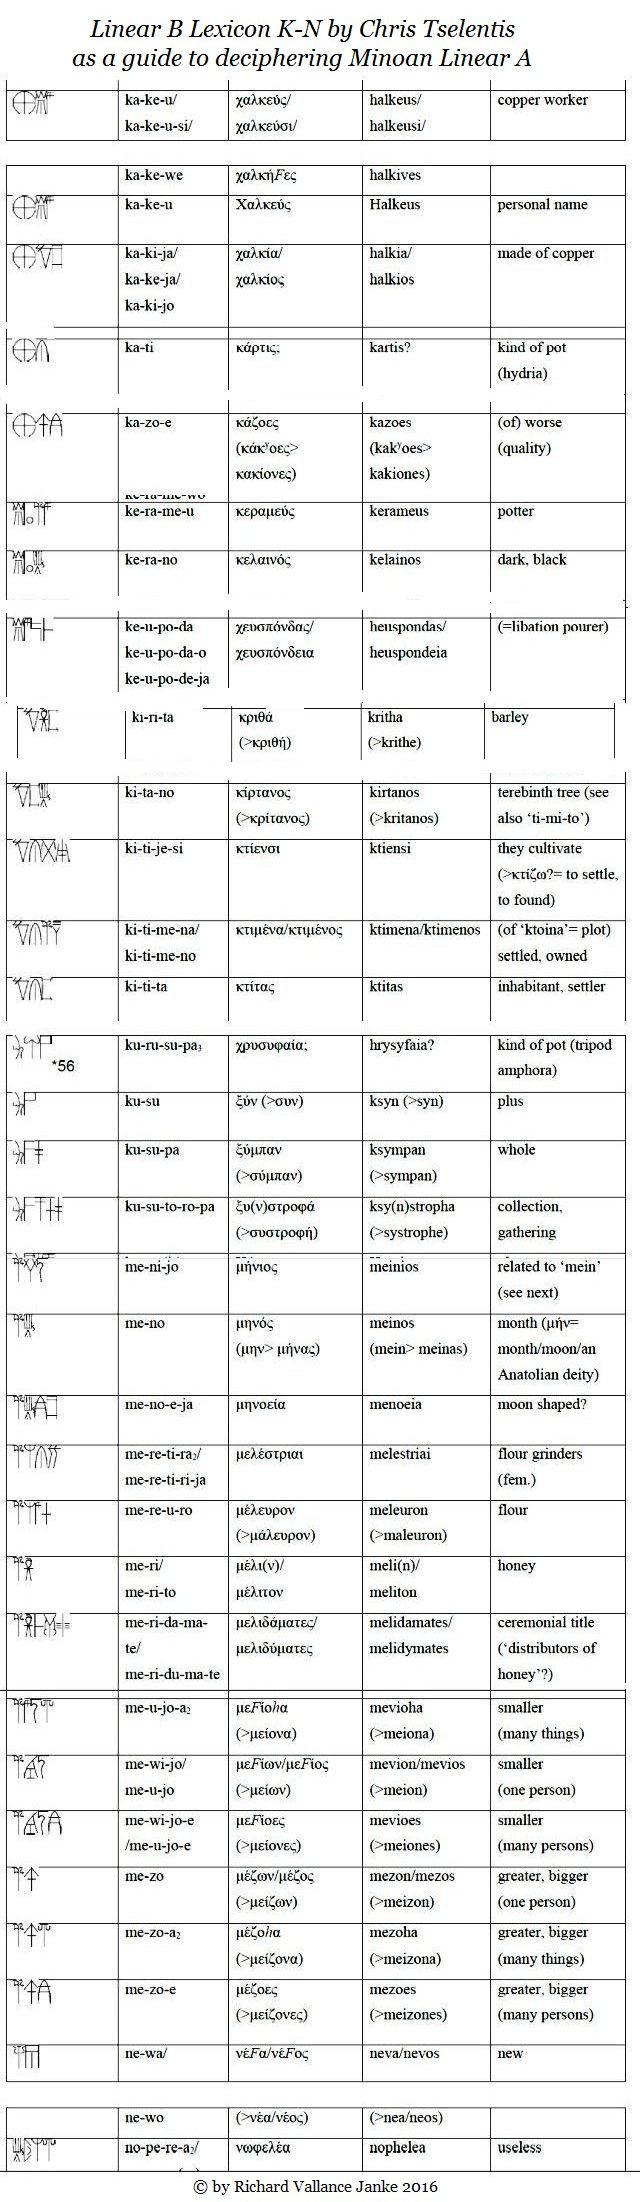 Linear B Lexicon K-N as a guide to deciphering Minoan Linear A